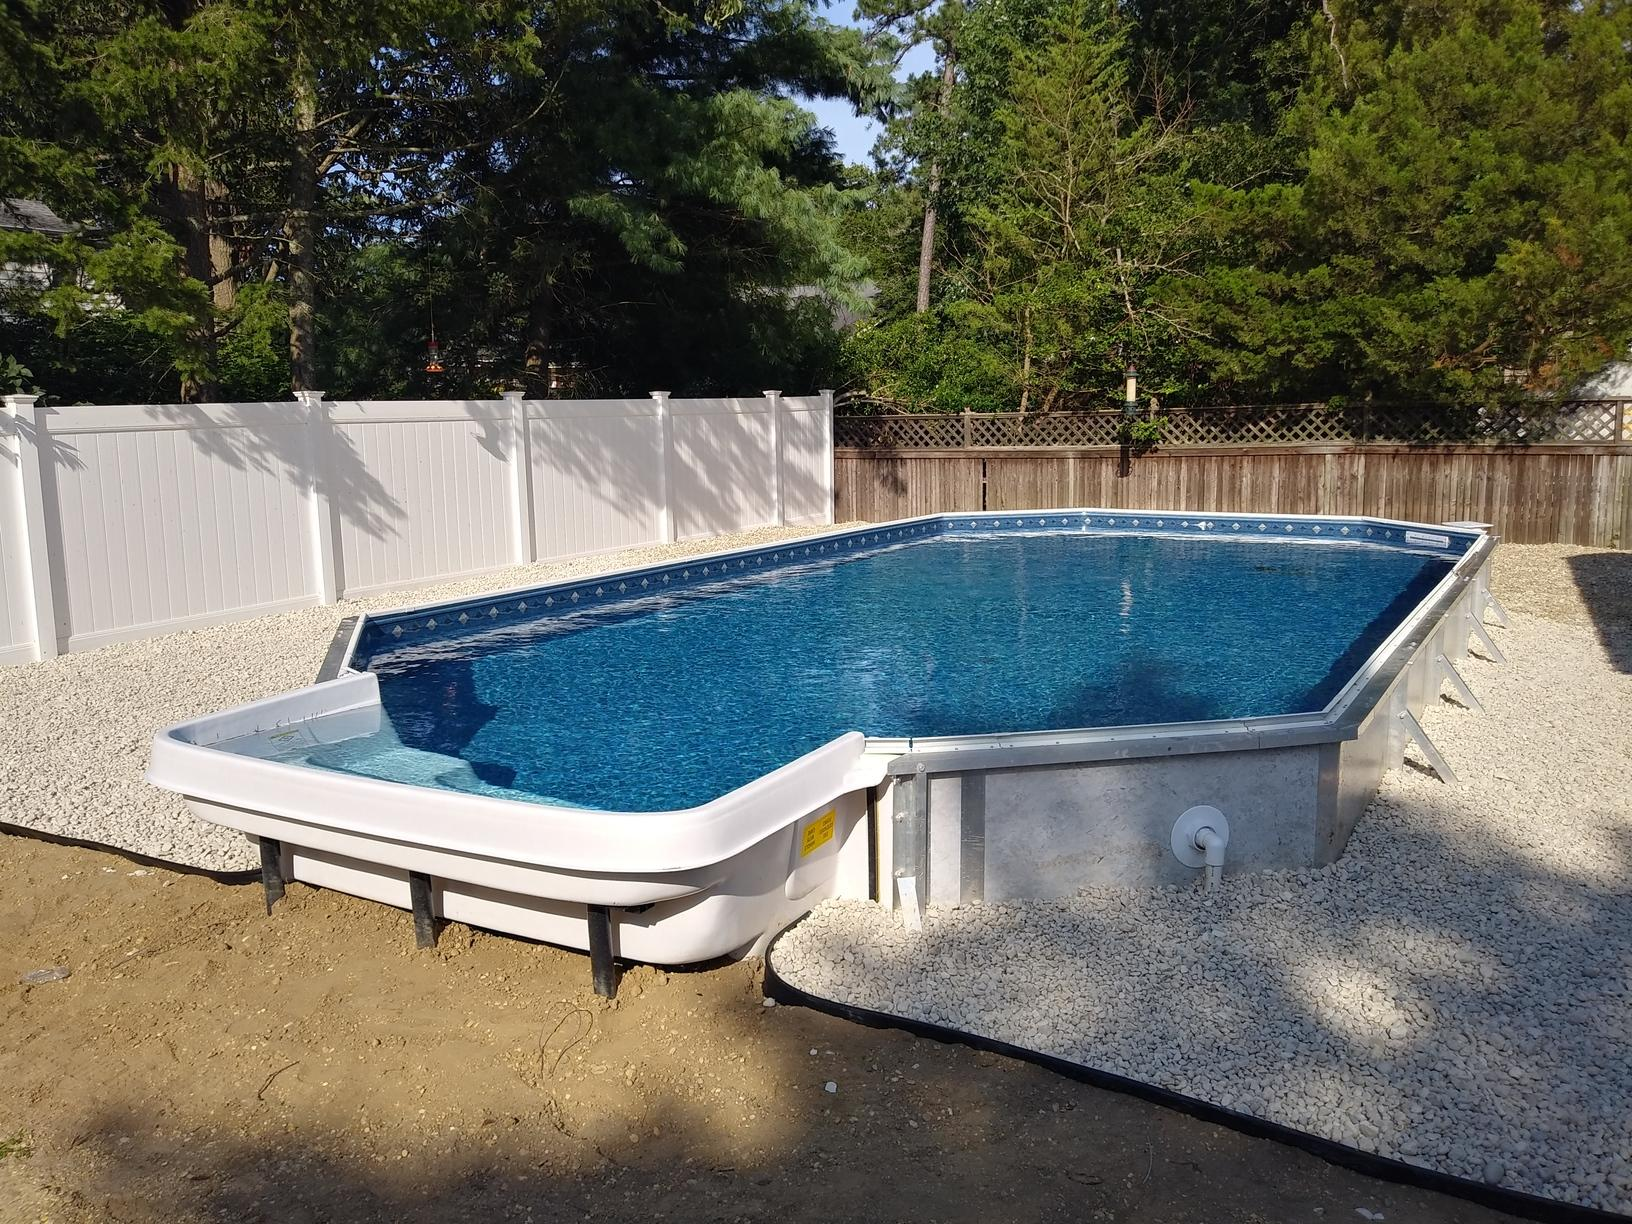 On Ground Radiant Pool Installation in Pine Beach, NJ - After Photo